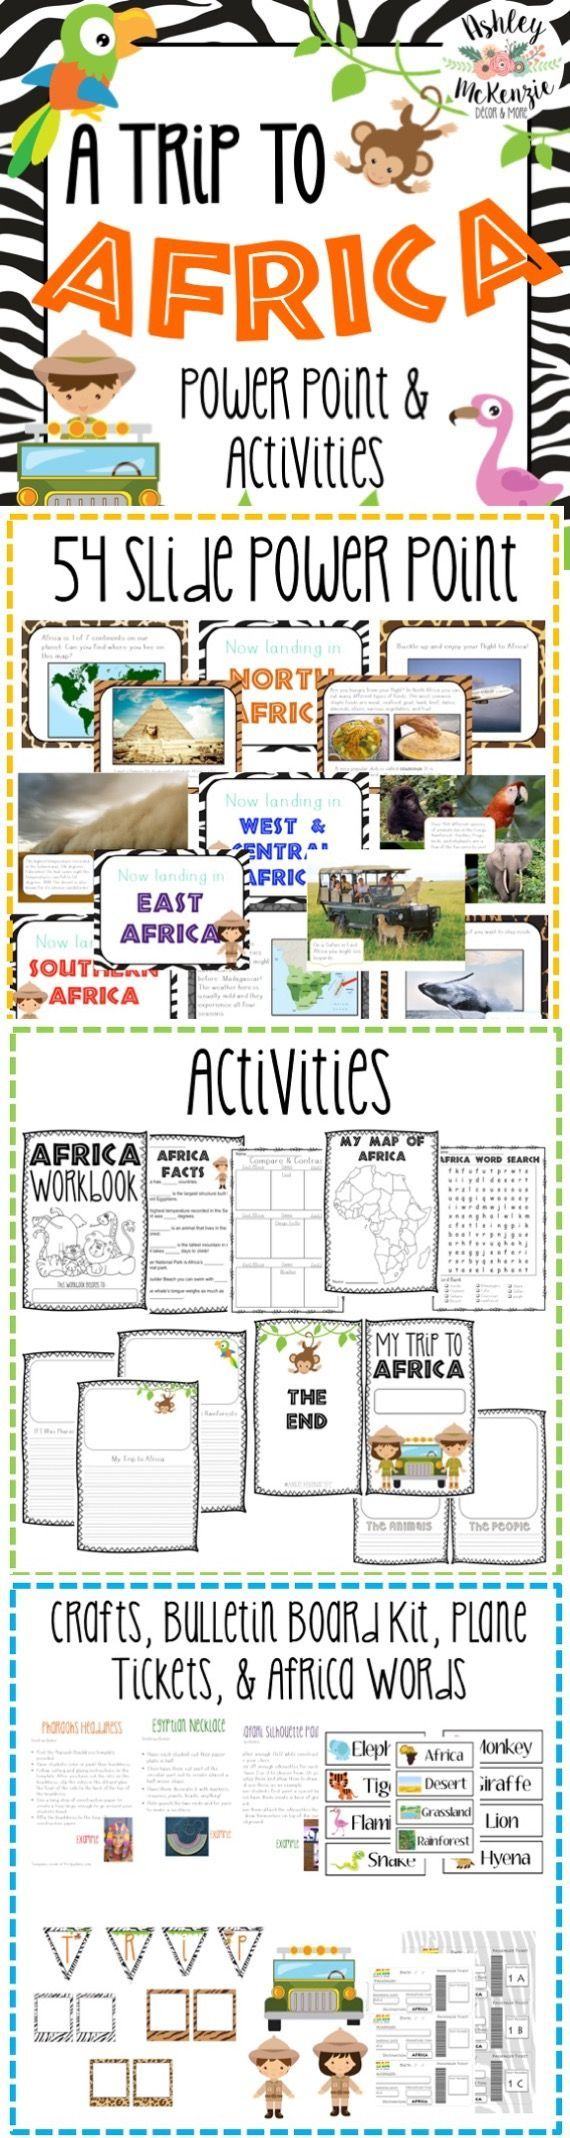 Trip to Africa Power Point and activities unit. Fun social studies unit for elementary students!